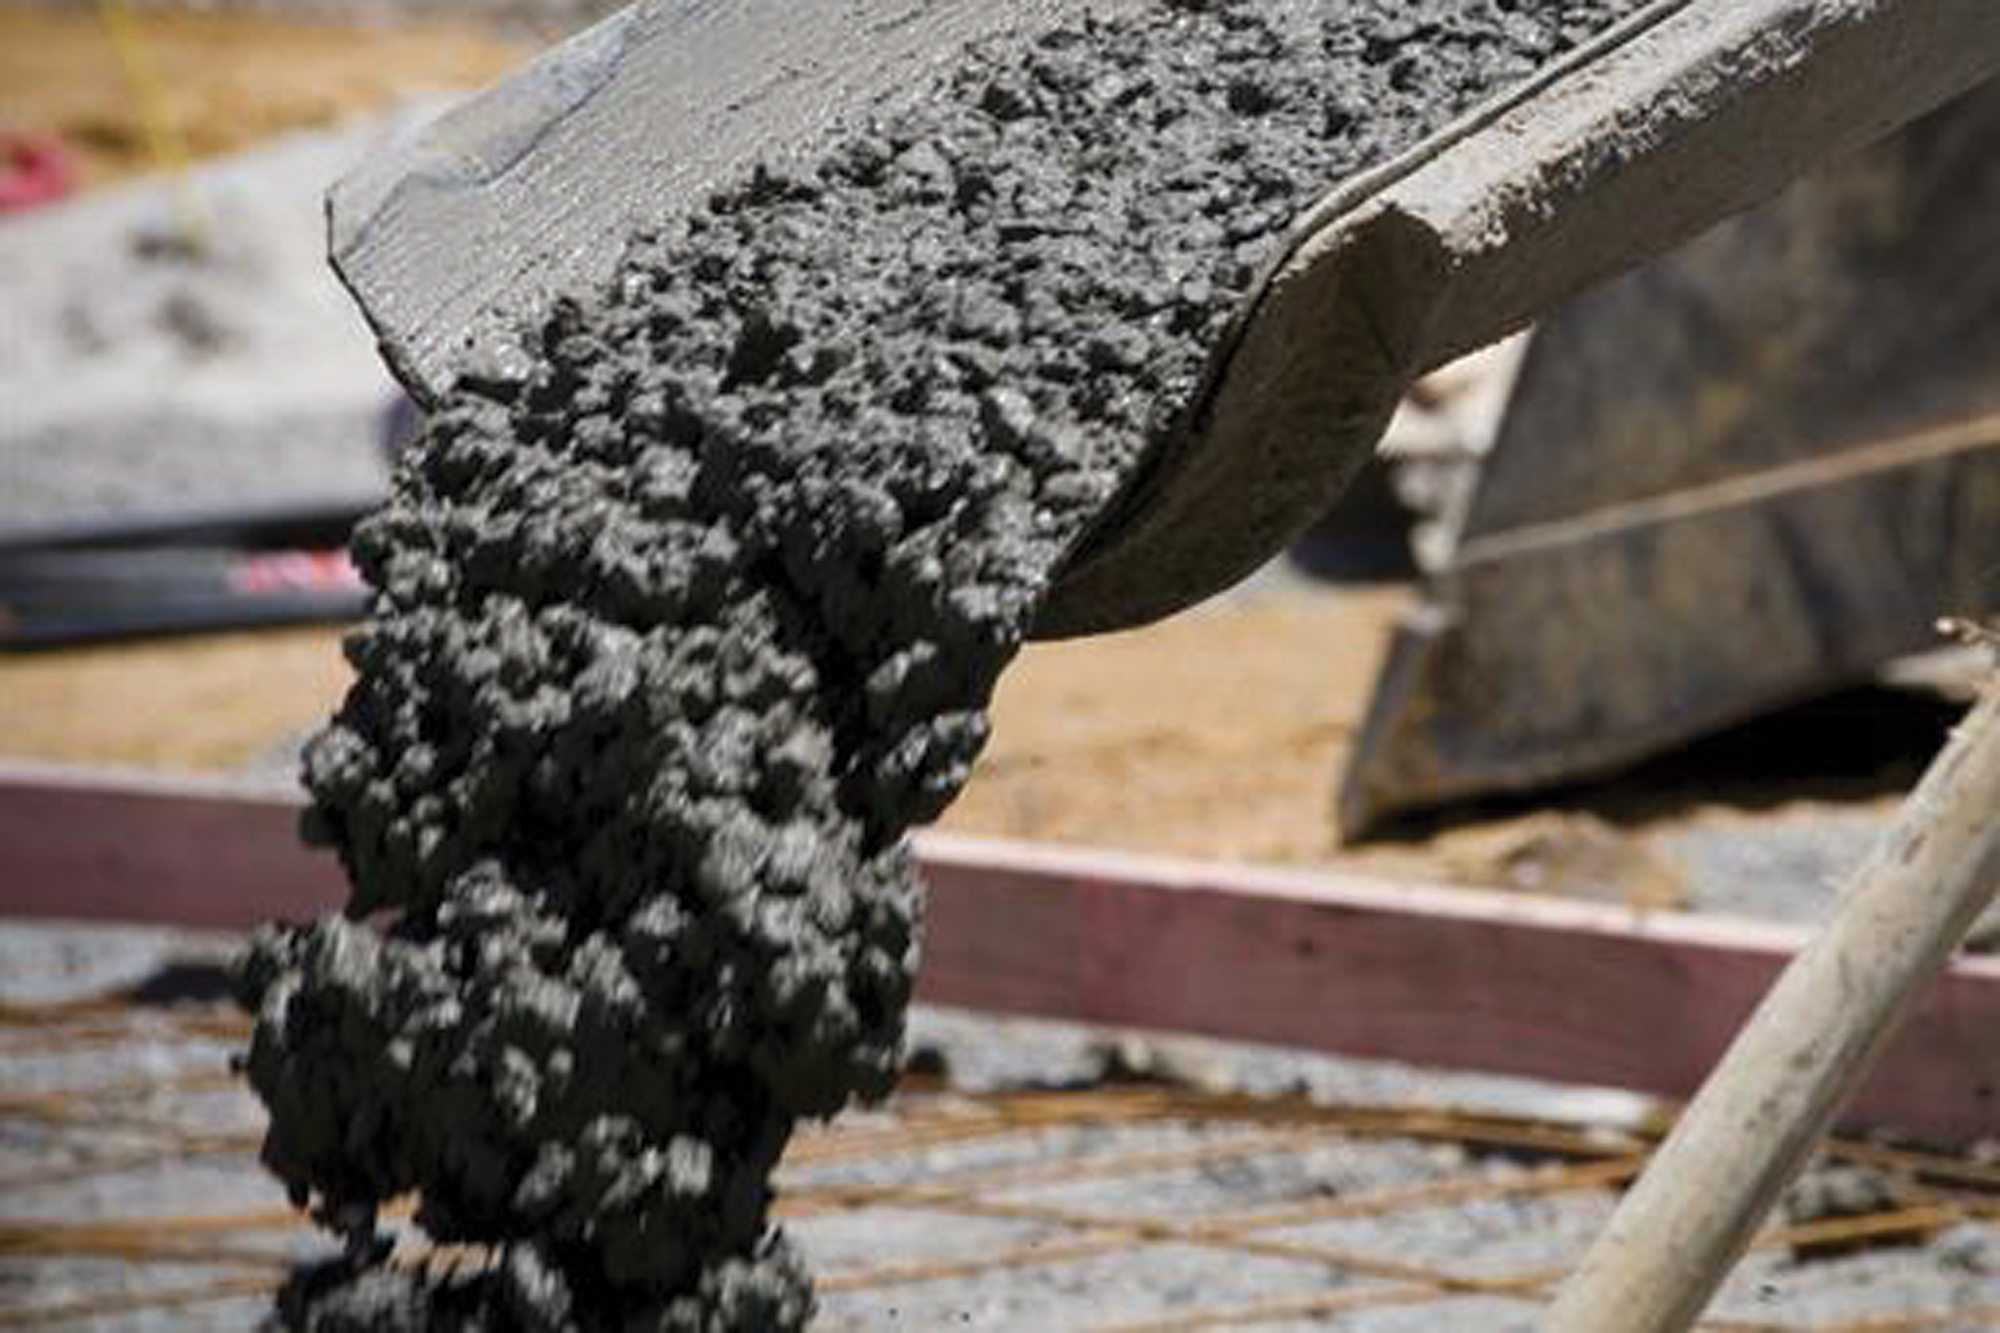 High Early Strength Concrete: A new dimension in concrete technology